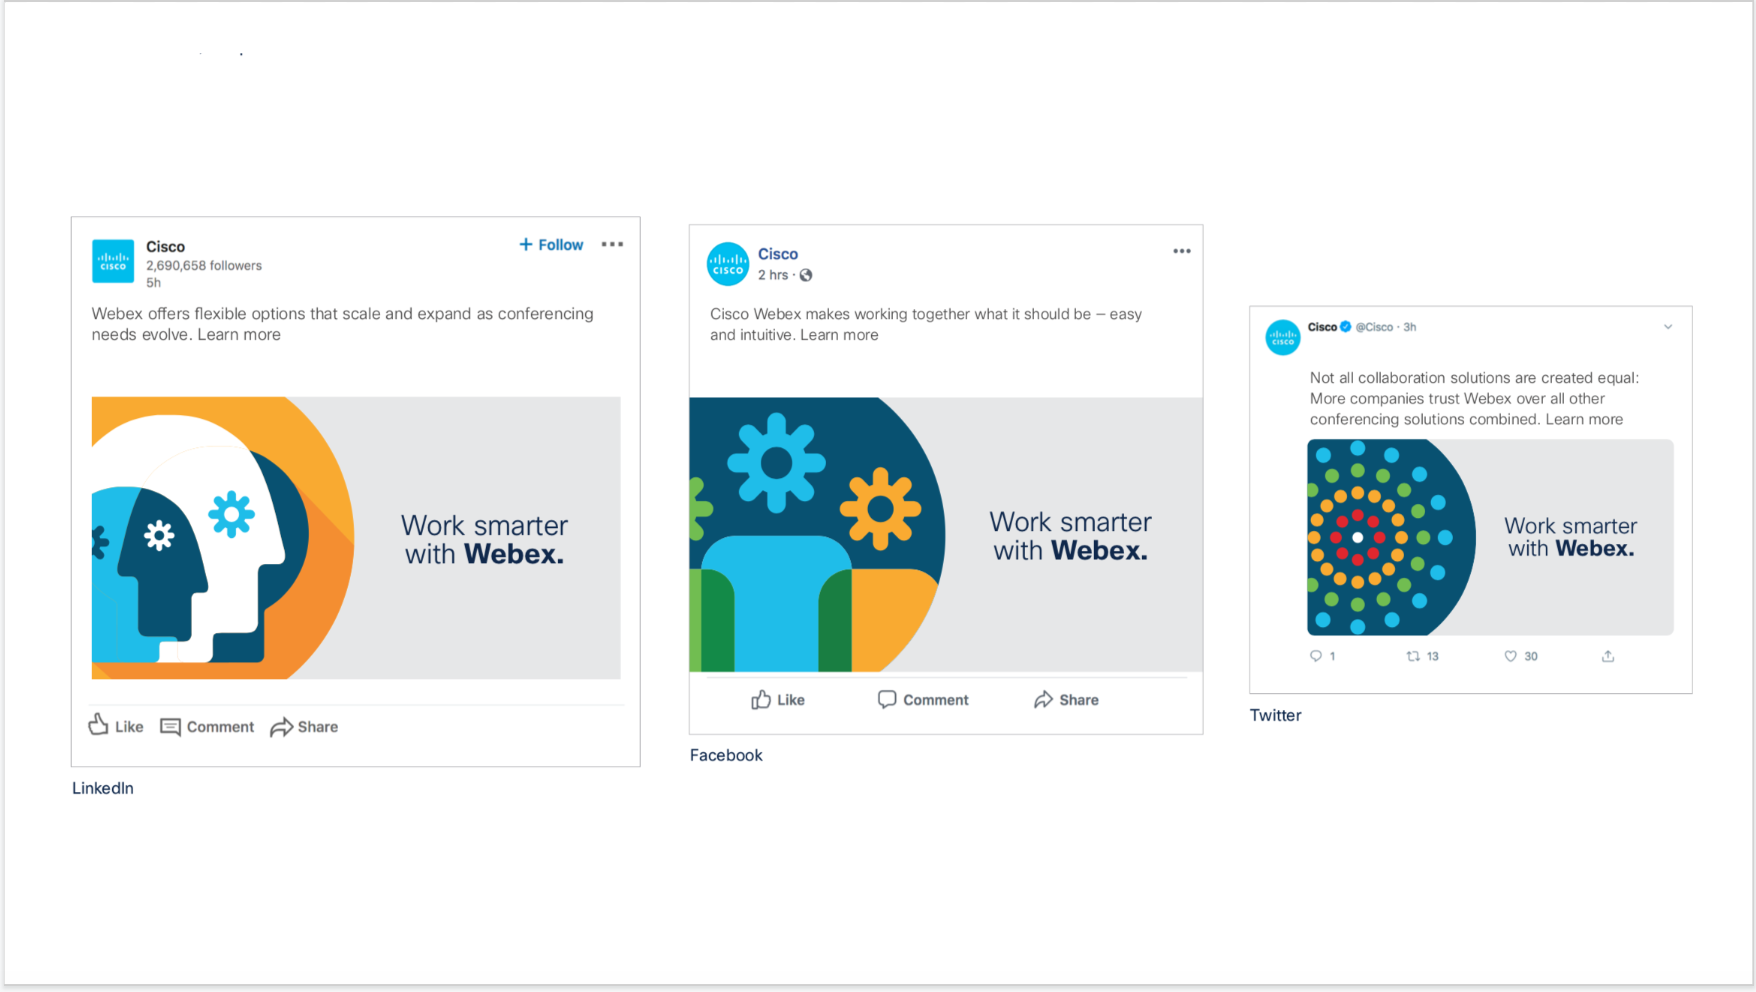 Cisco Webex 5 Reasons Social